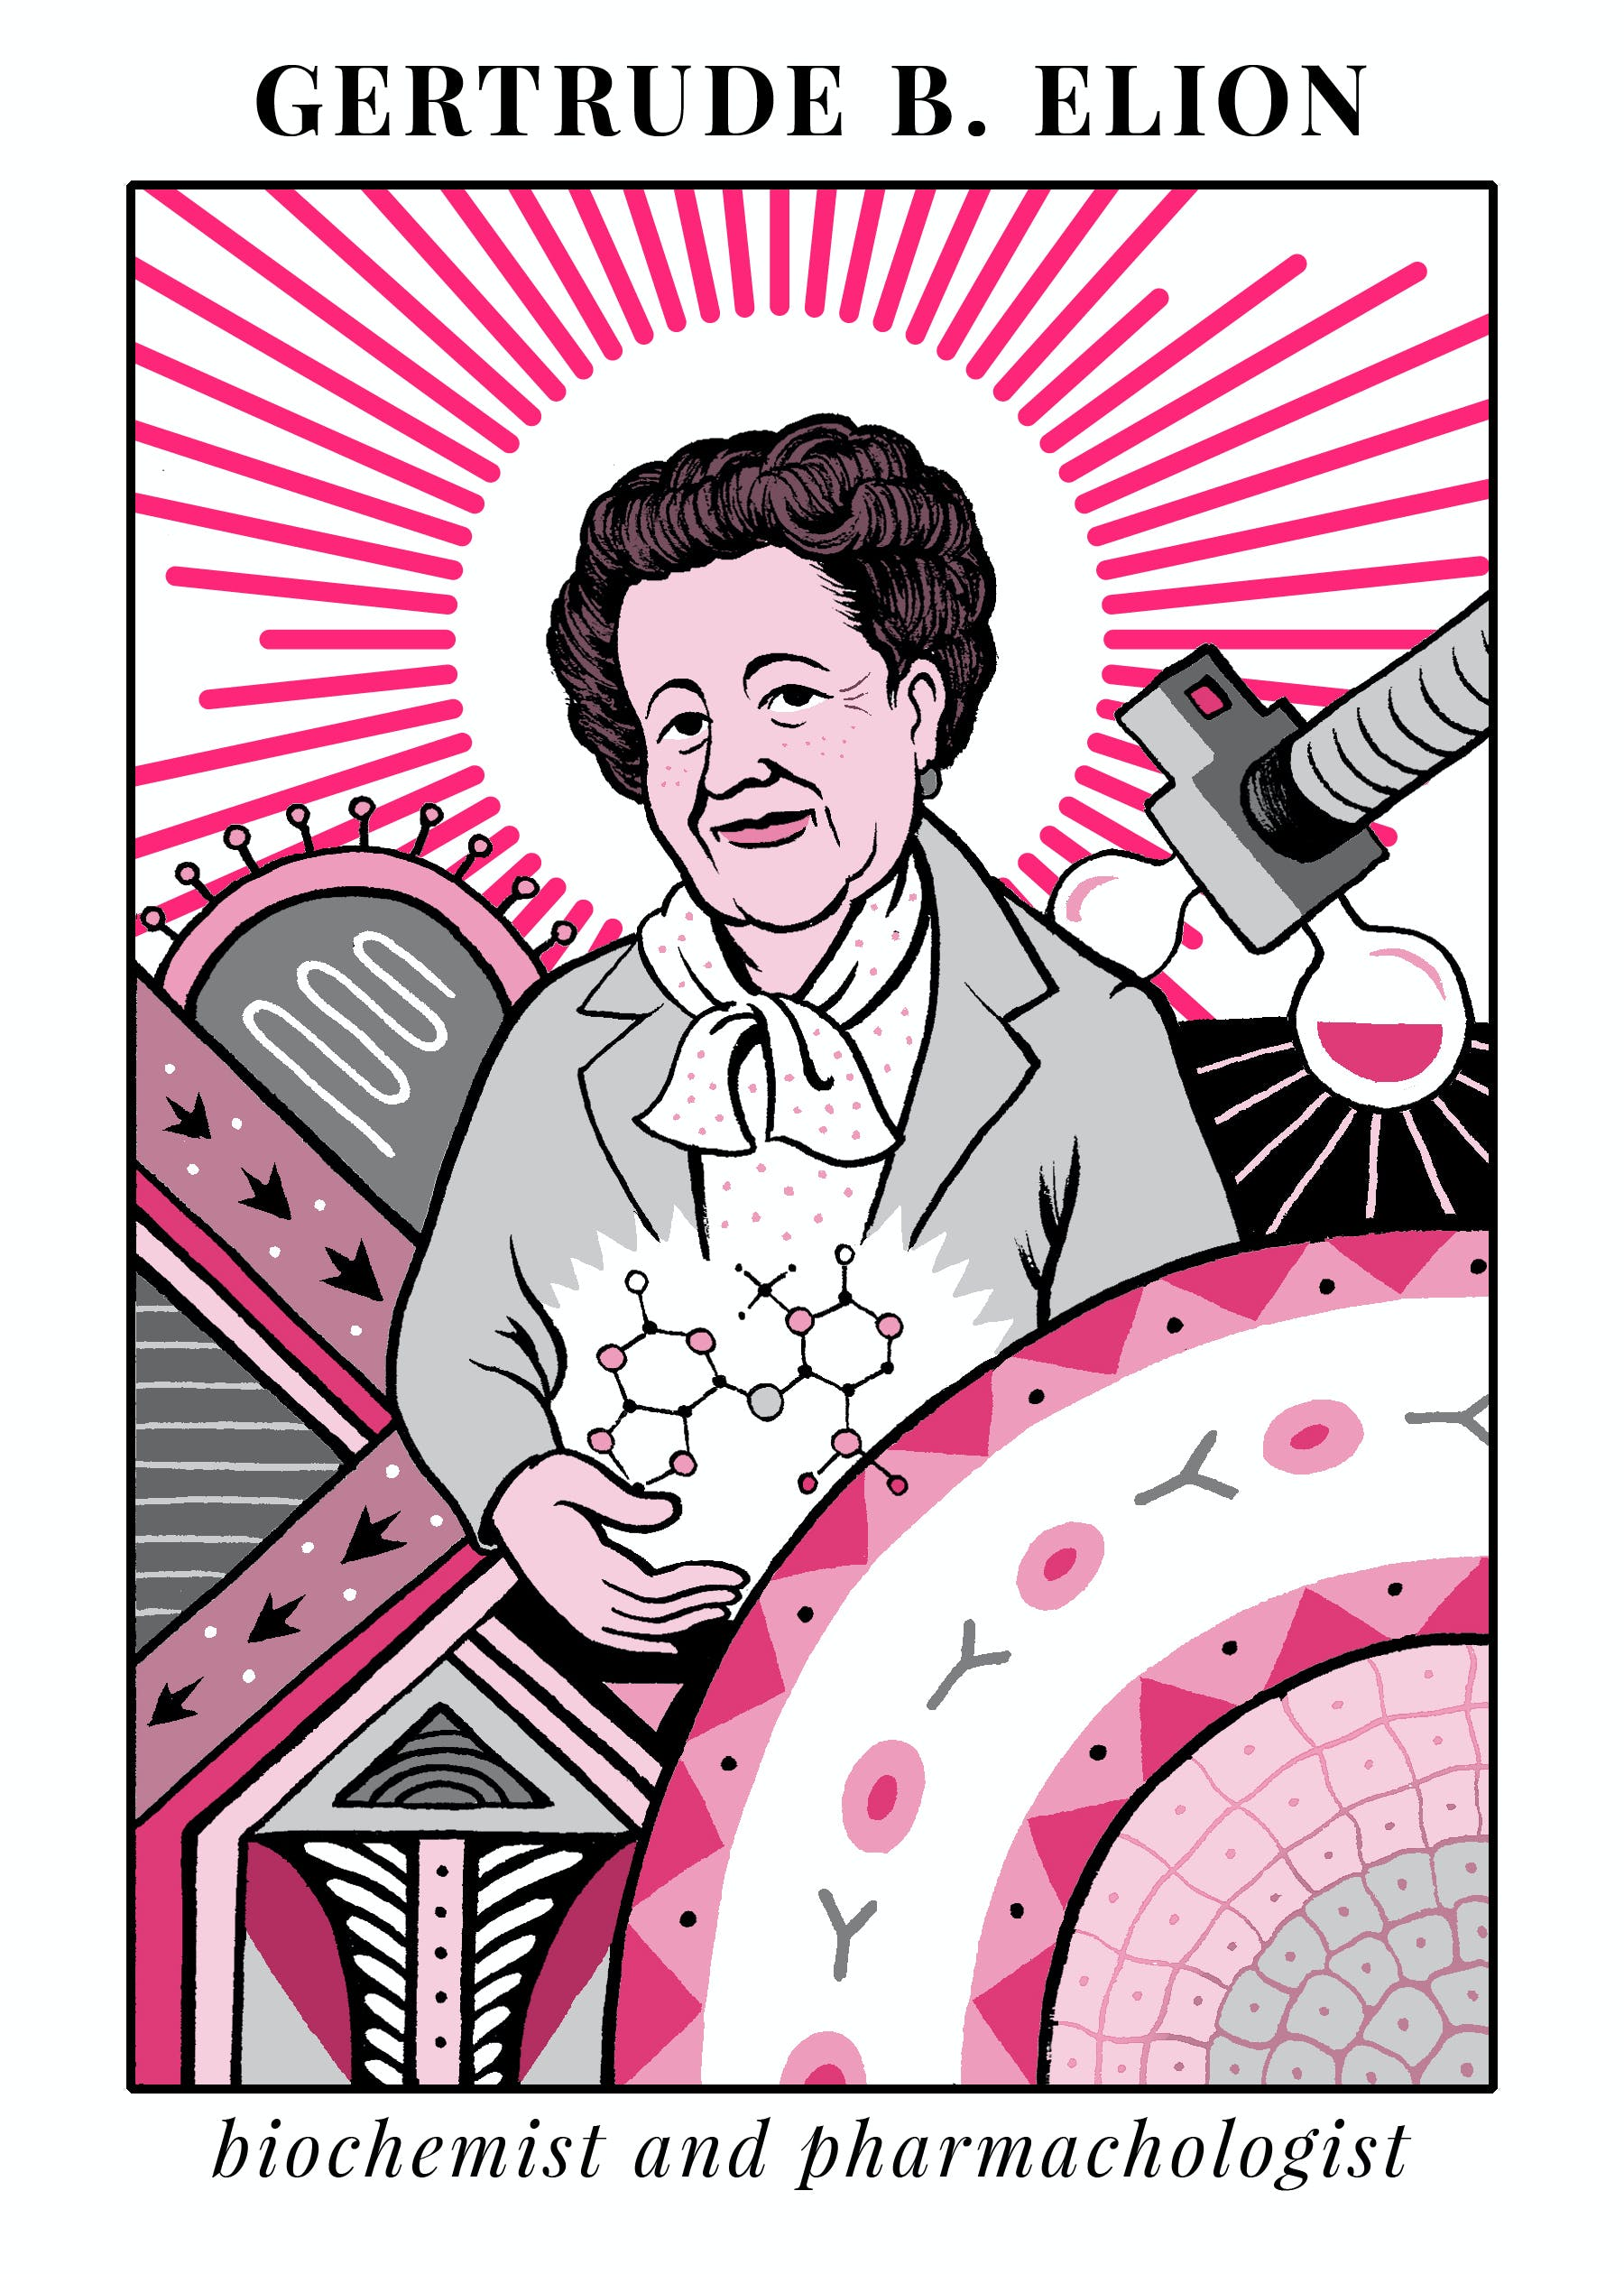 Gertrude Elion illustration